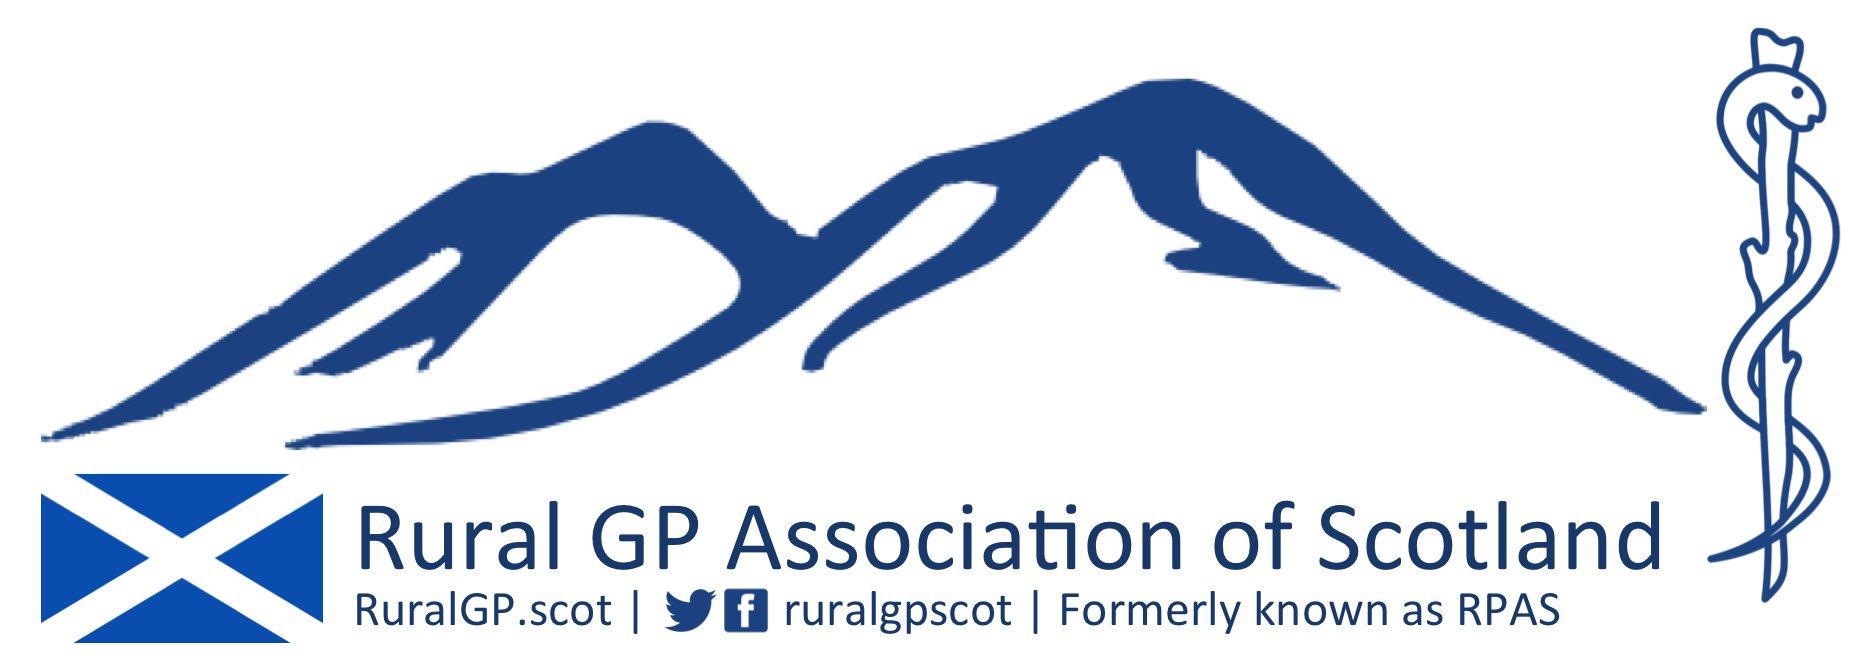 @drclairemarie #ruralcafe Greetings from Scotland where we have just had a fantastic #rgpas16 @RuralGPScot conf where student engagement key https://t.co/bgyD5IjHvQ